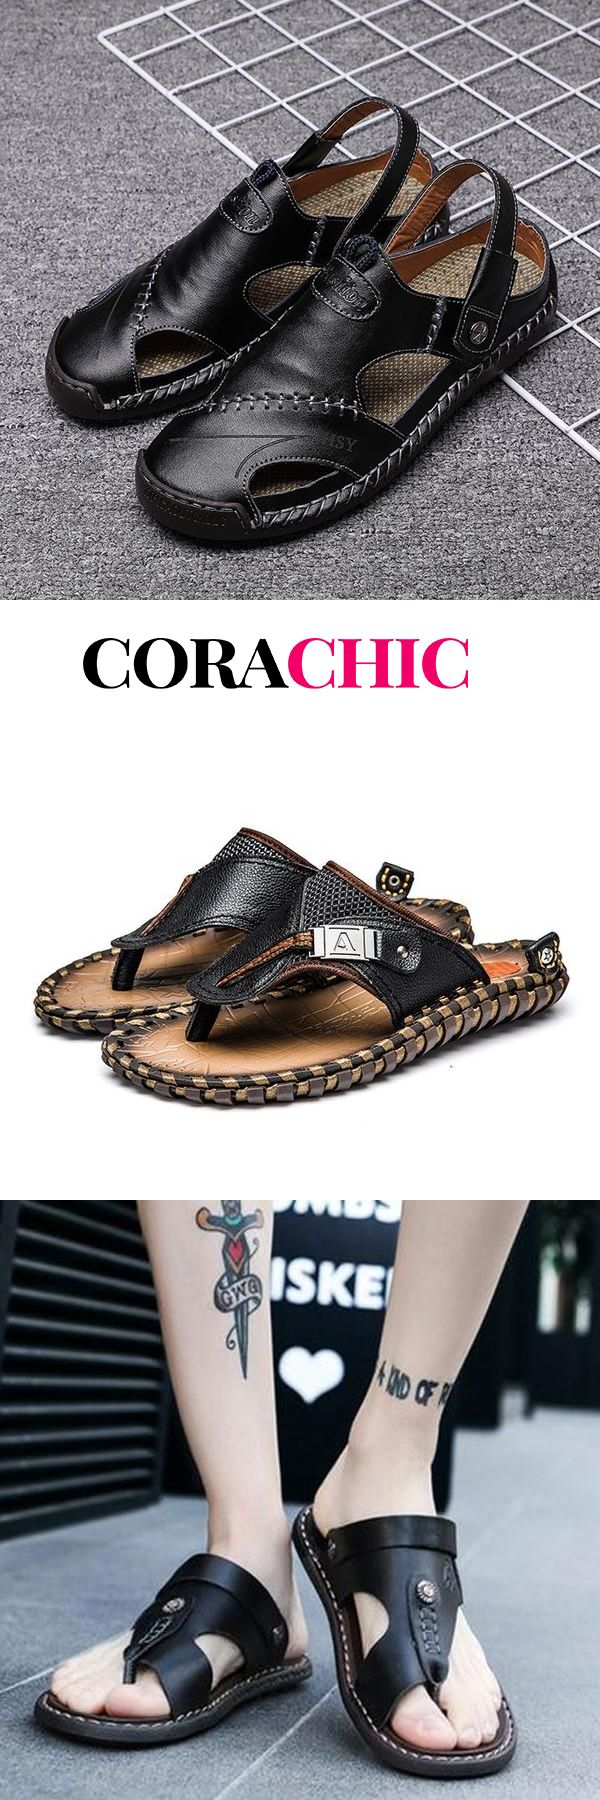 Vintage home-decor Boho Style is part of Vintage Style The Boho Chic Decor Trend Follow The Yellow - Men's Casual Summer Breathable Sandals On Sale Good Quality & Comfy 50%OFF!Shop now!